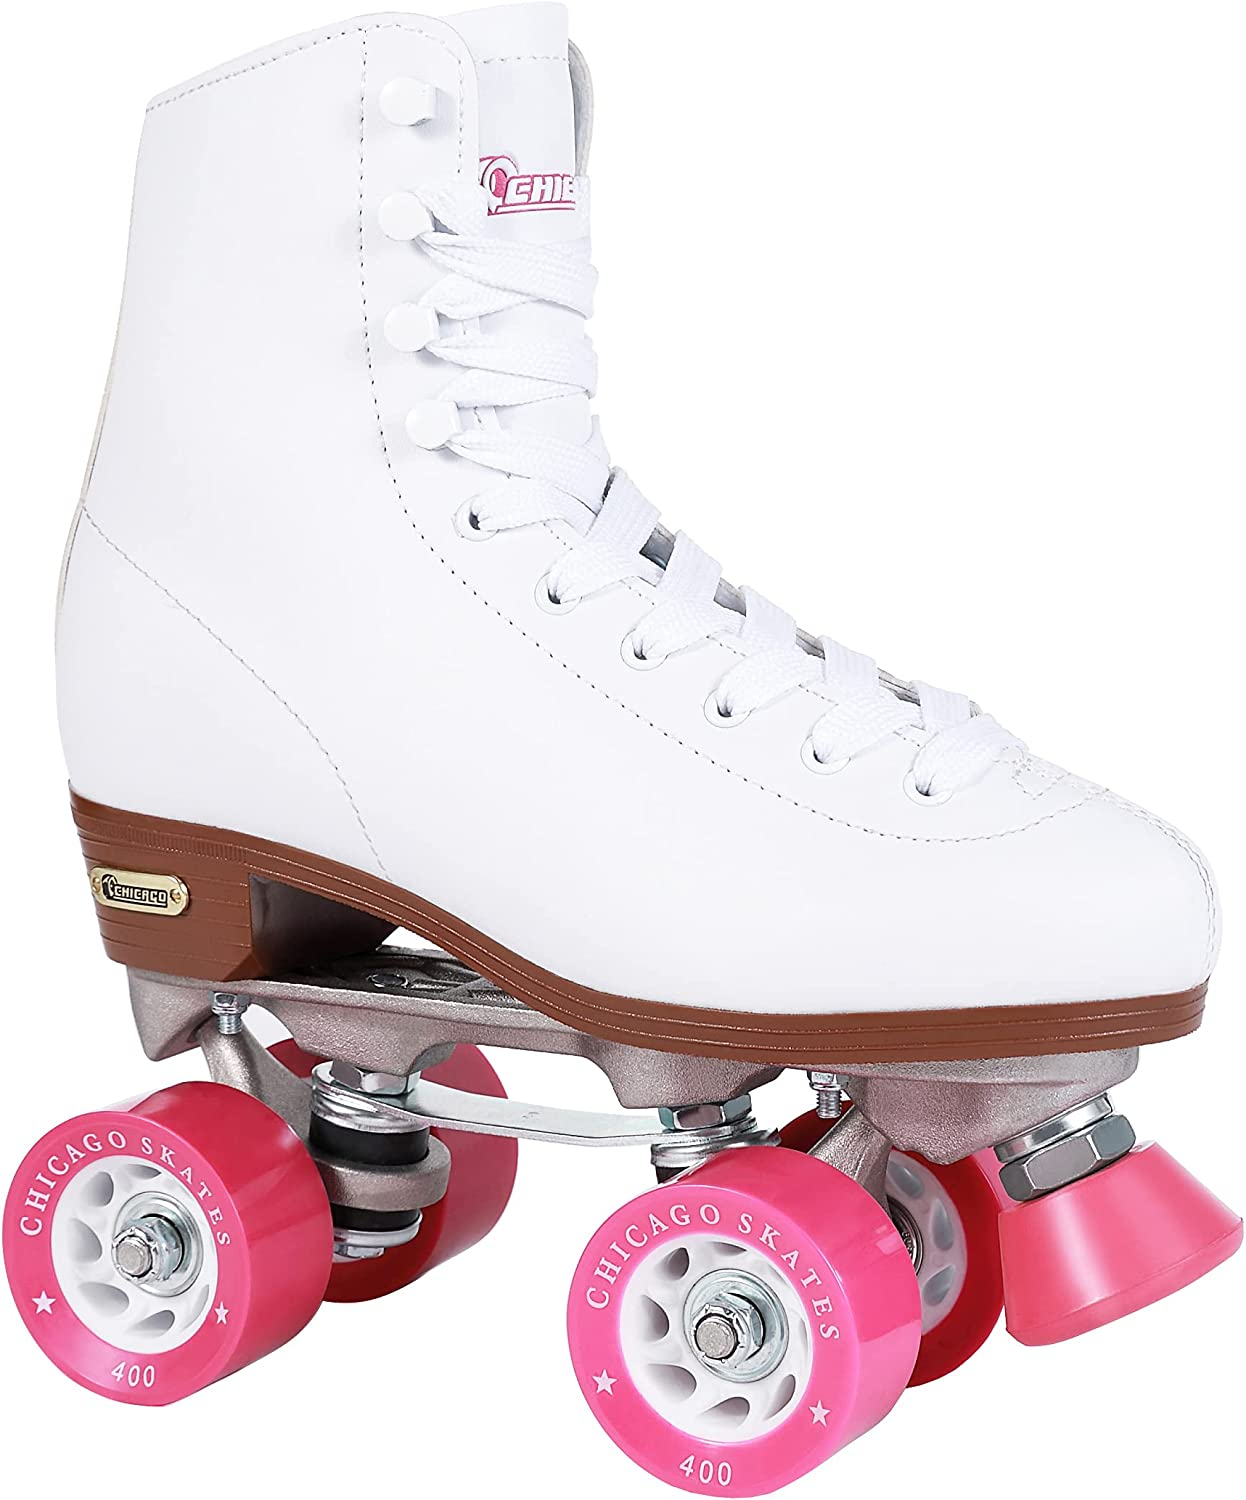 CHICAGO Women's Classic Roller Skates Quad Limited overseas time sale Rink - White Premium